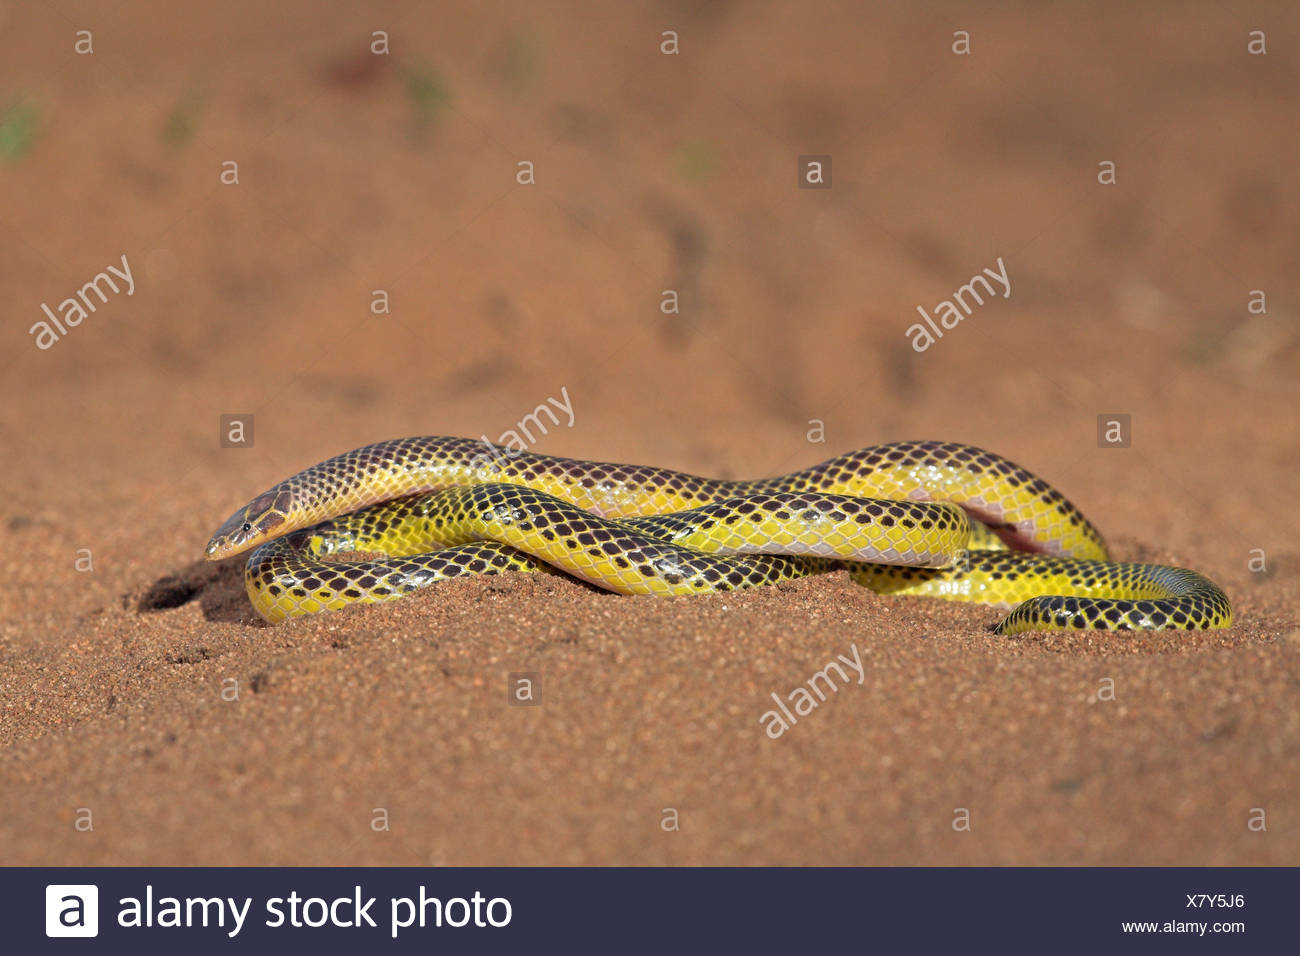 photo of a transvaal quill-snouted snake on sand - Stock Image